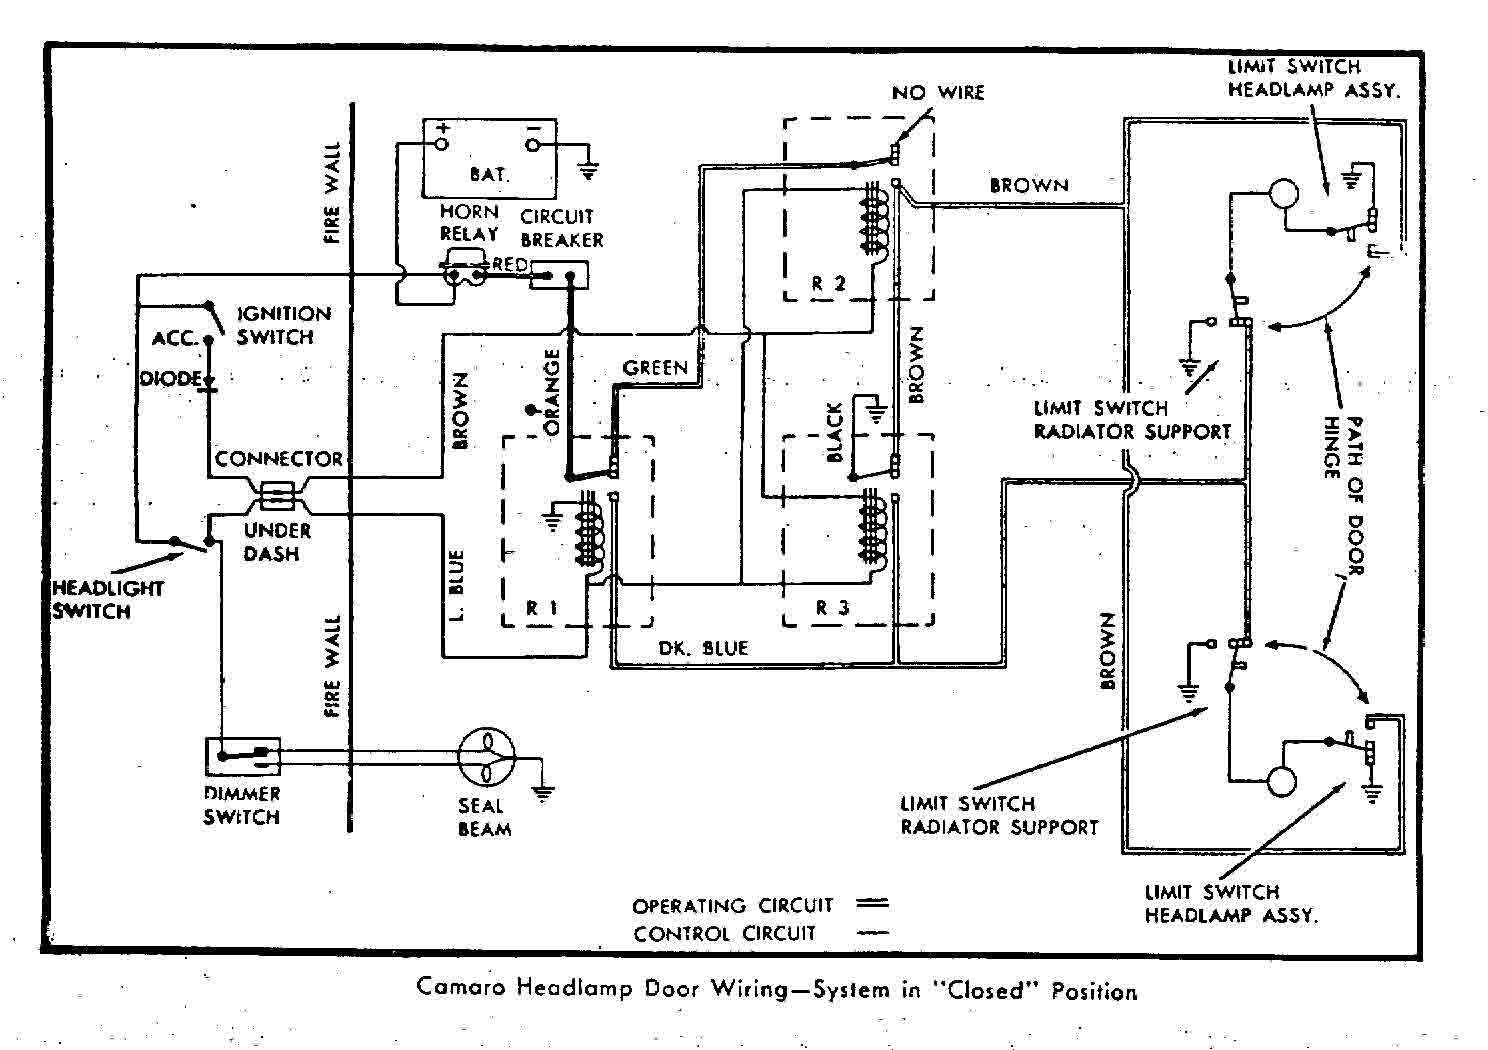 67 Camaro Rs Wiring Diagram Opinions About Wiring Diagram \u2022 67 Mustang  Ignition Wiring Diagram 1968 Camaro Dash Wiring Diagram